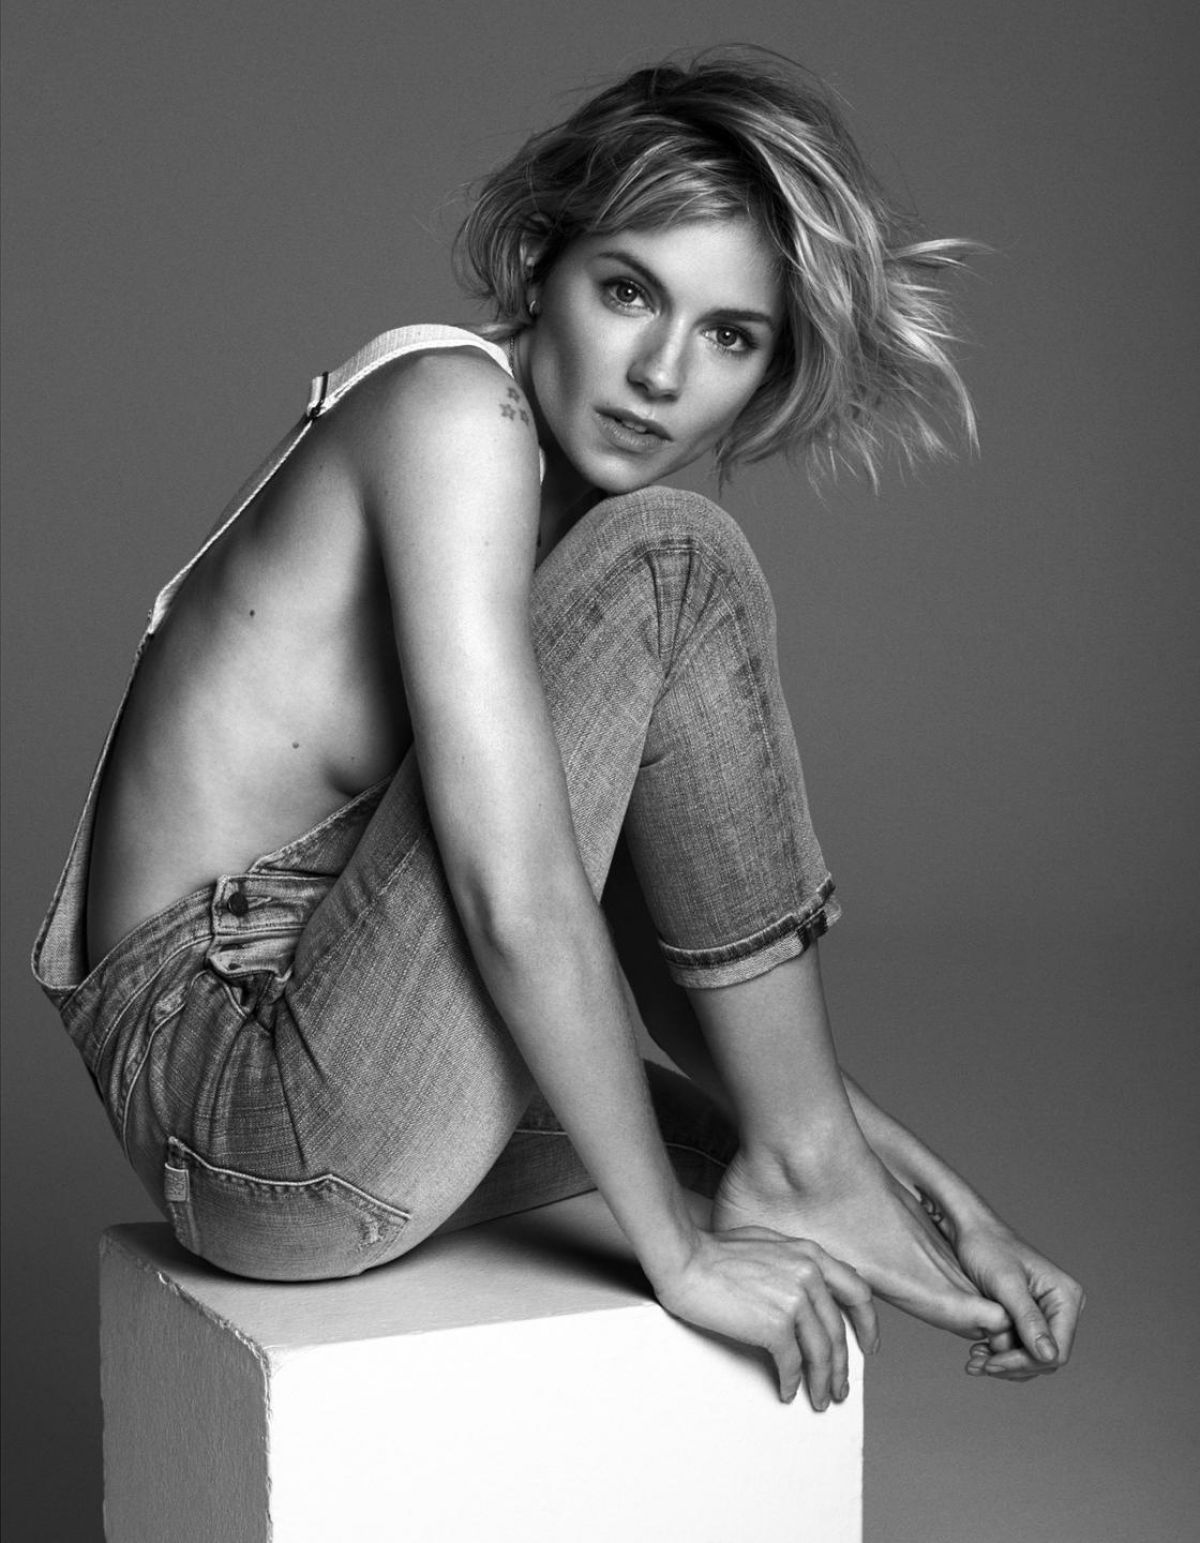 sienna-miller-in-observer-magazine-january-2015-issue_2